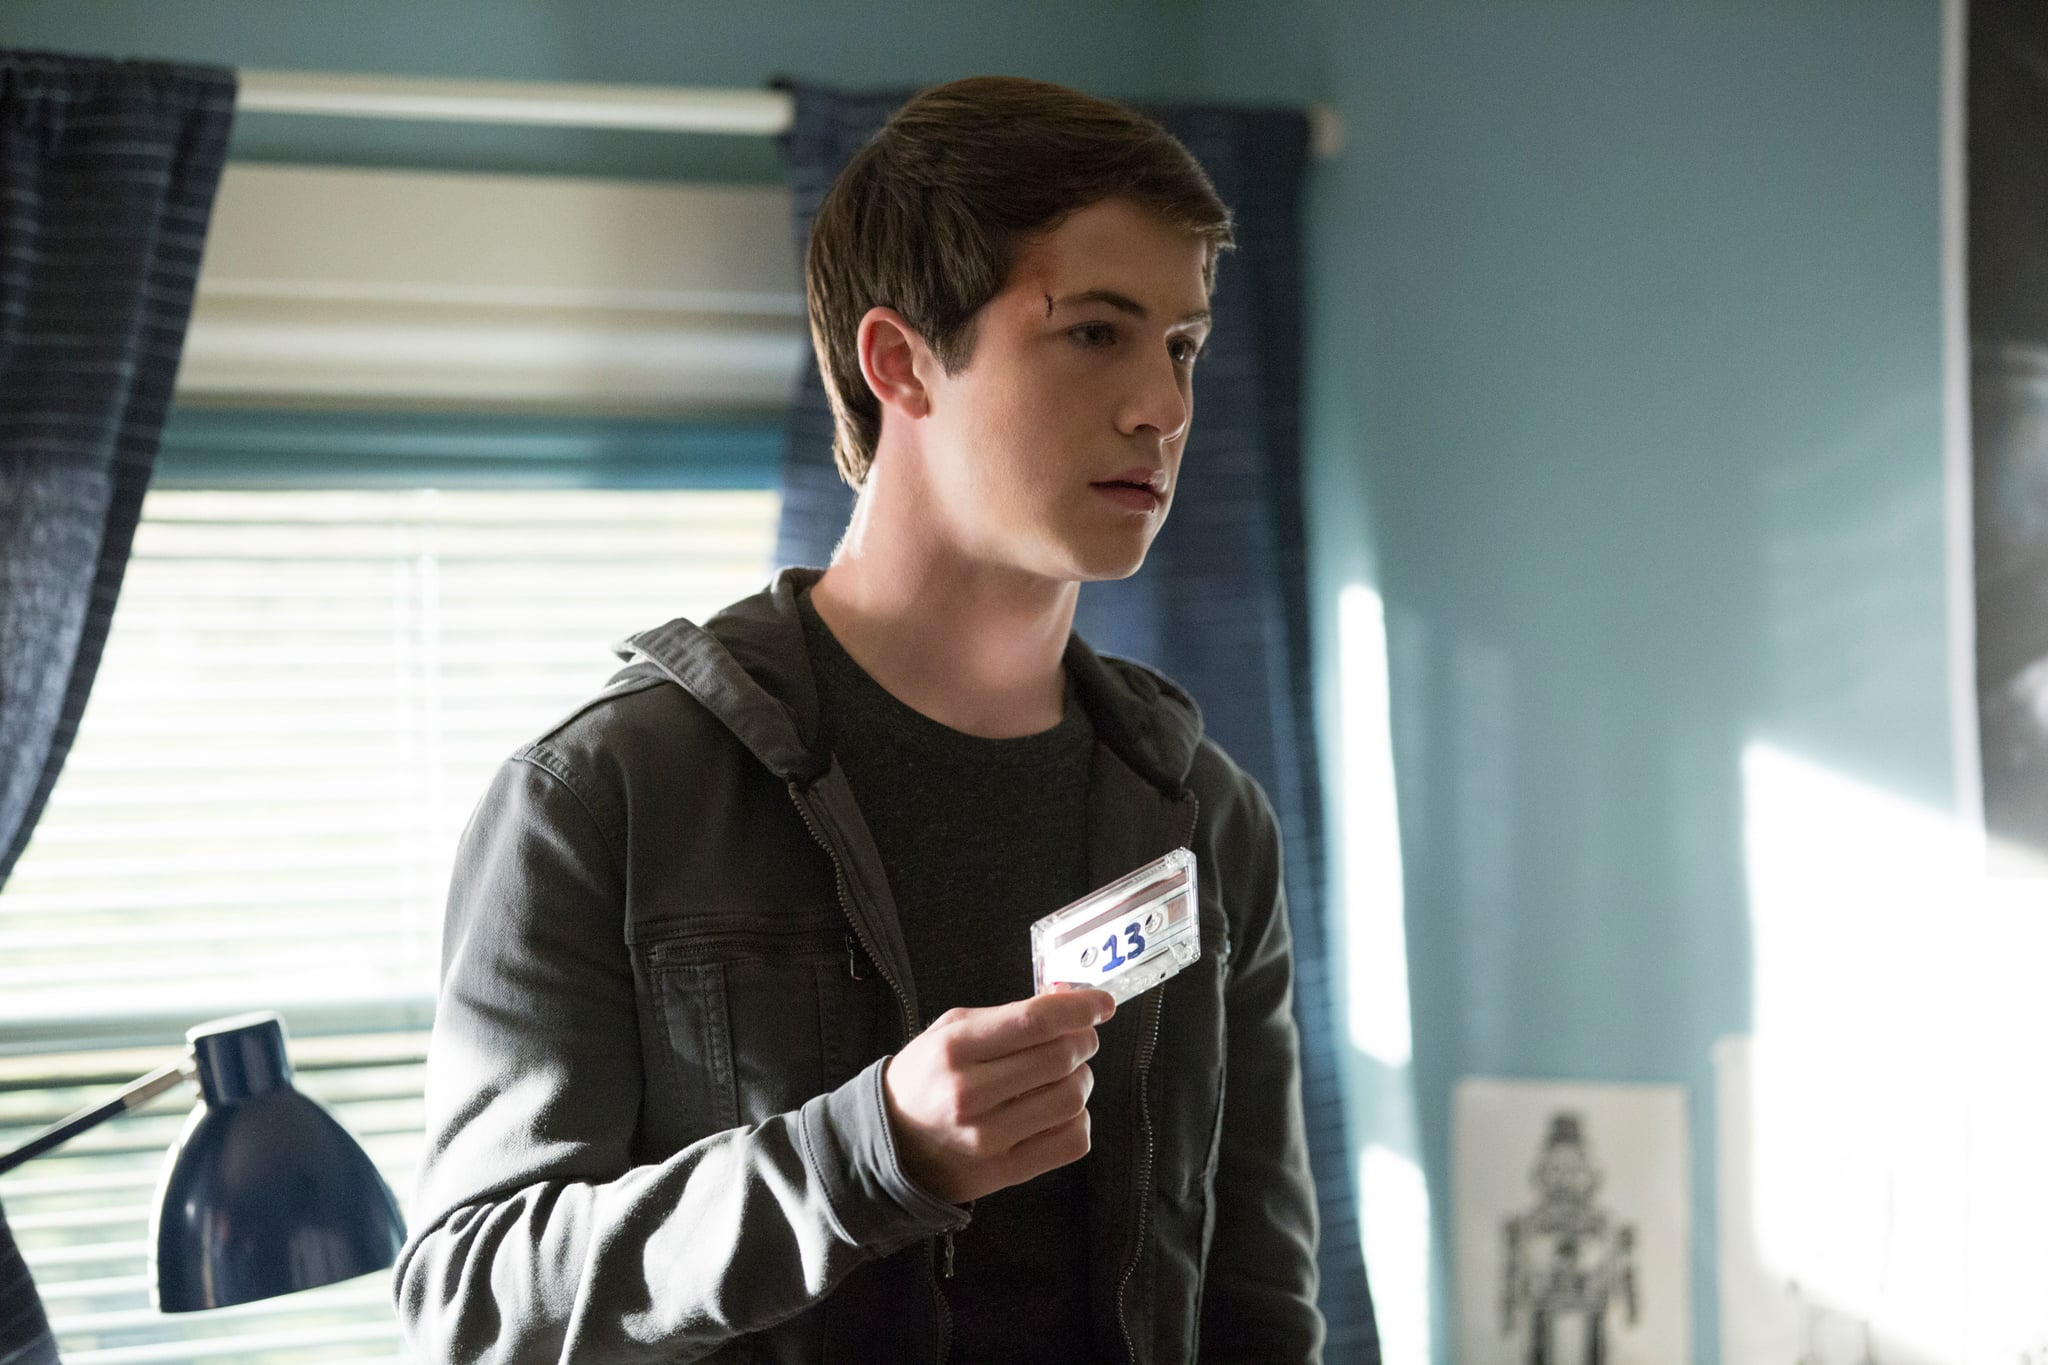 13 REASONS WHY, (aka THIRTEEN REASONS WHY), Dylan Minnette in 'Tape 7, Side A', (Season 1, Episode 113, aired March 31, 2017), ph: Beth Dubber / Netflix / courtesy Everett Collection